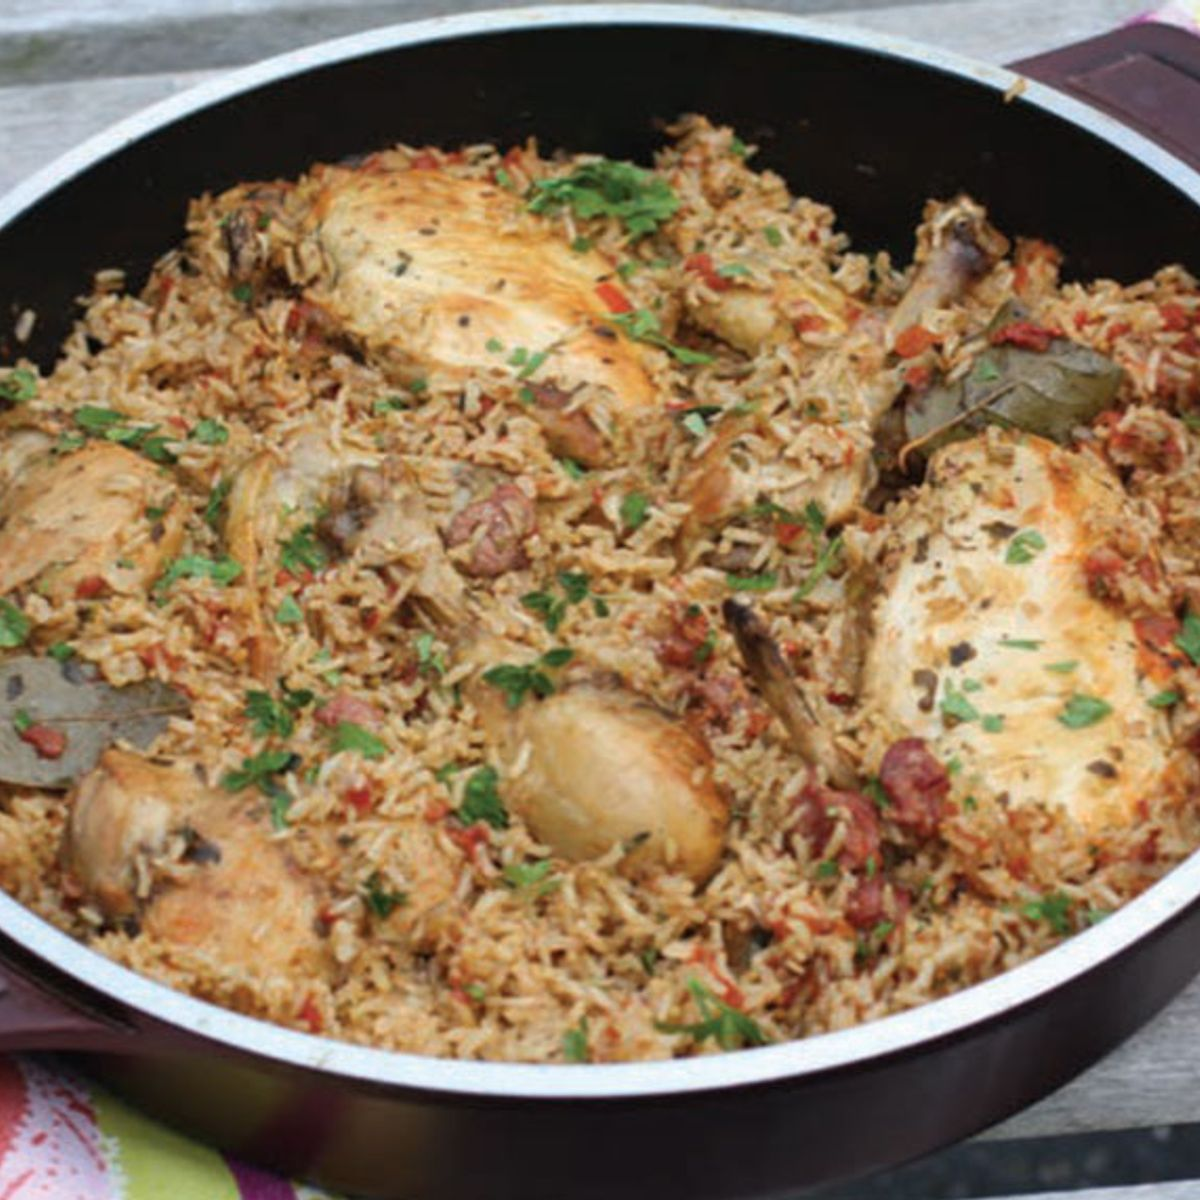 Full of flavor and full of satisfaction, arroz con pollo is one delicious Latin dish